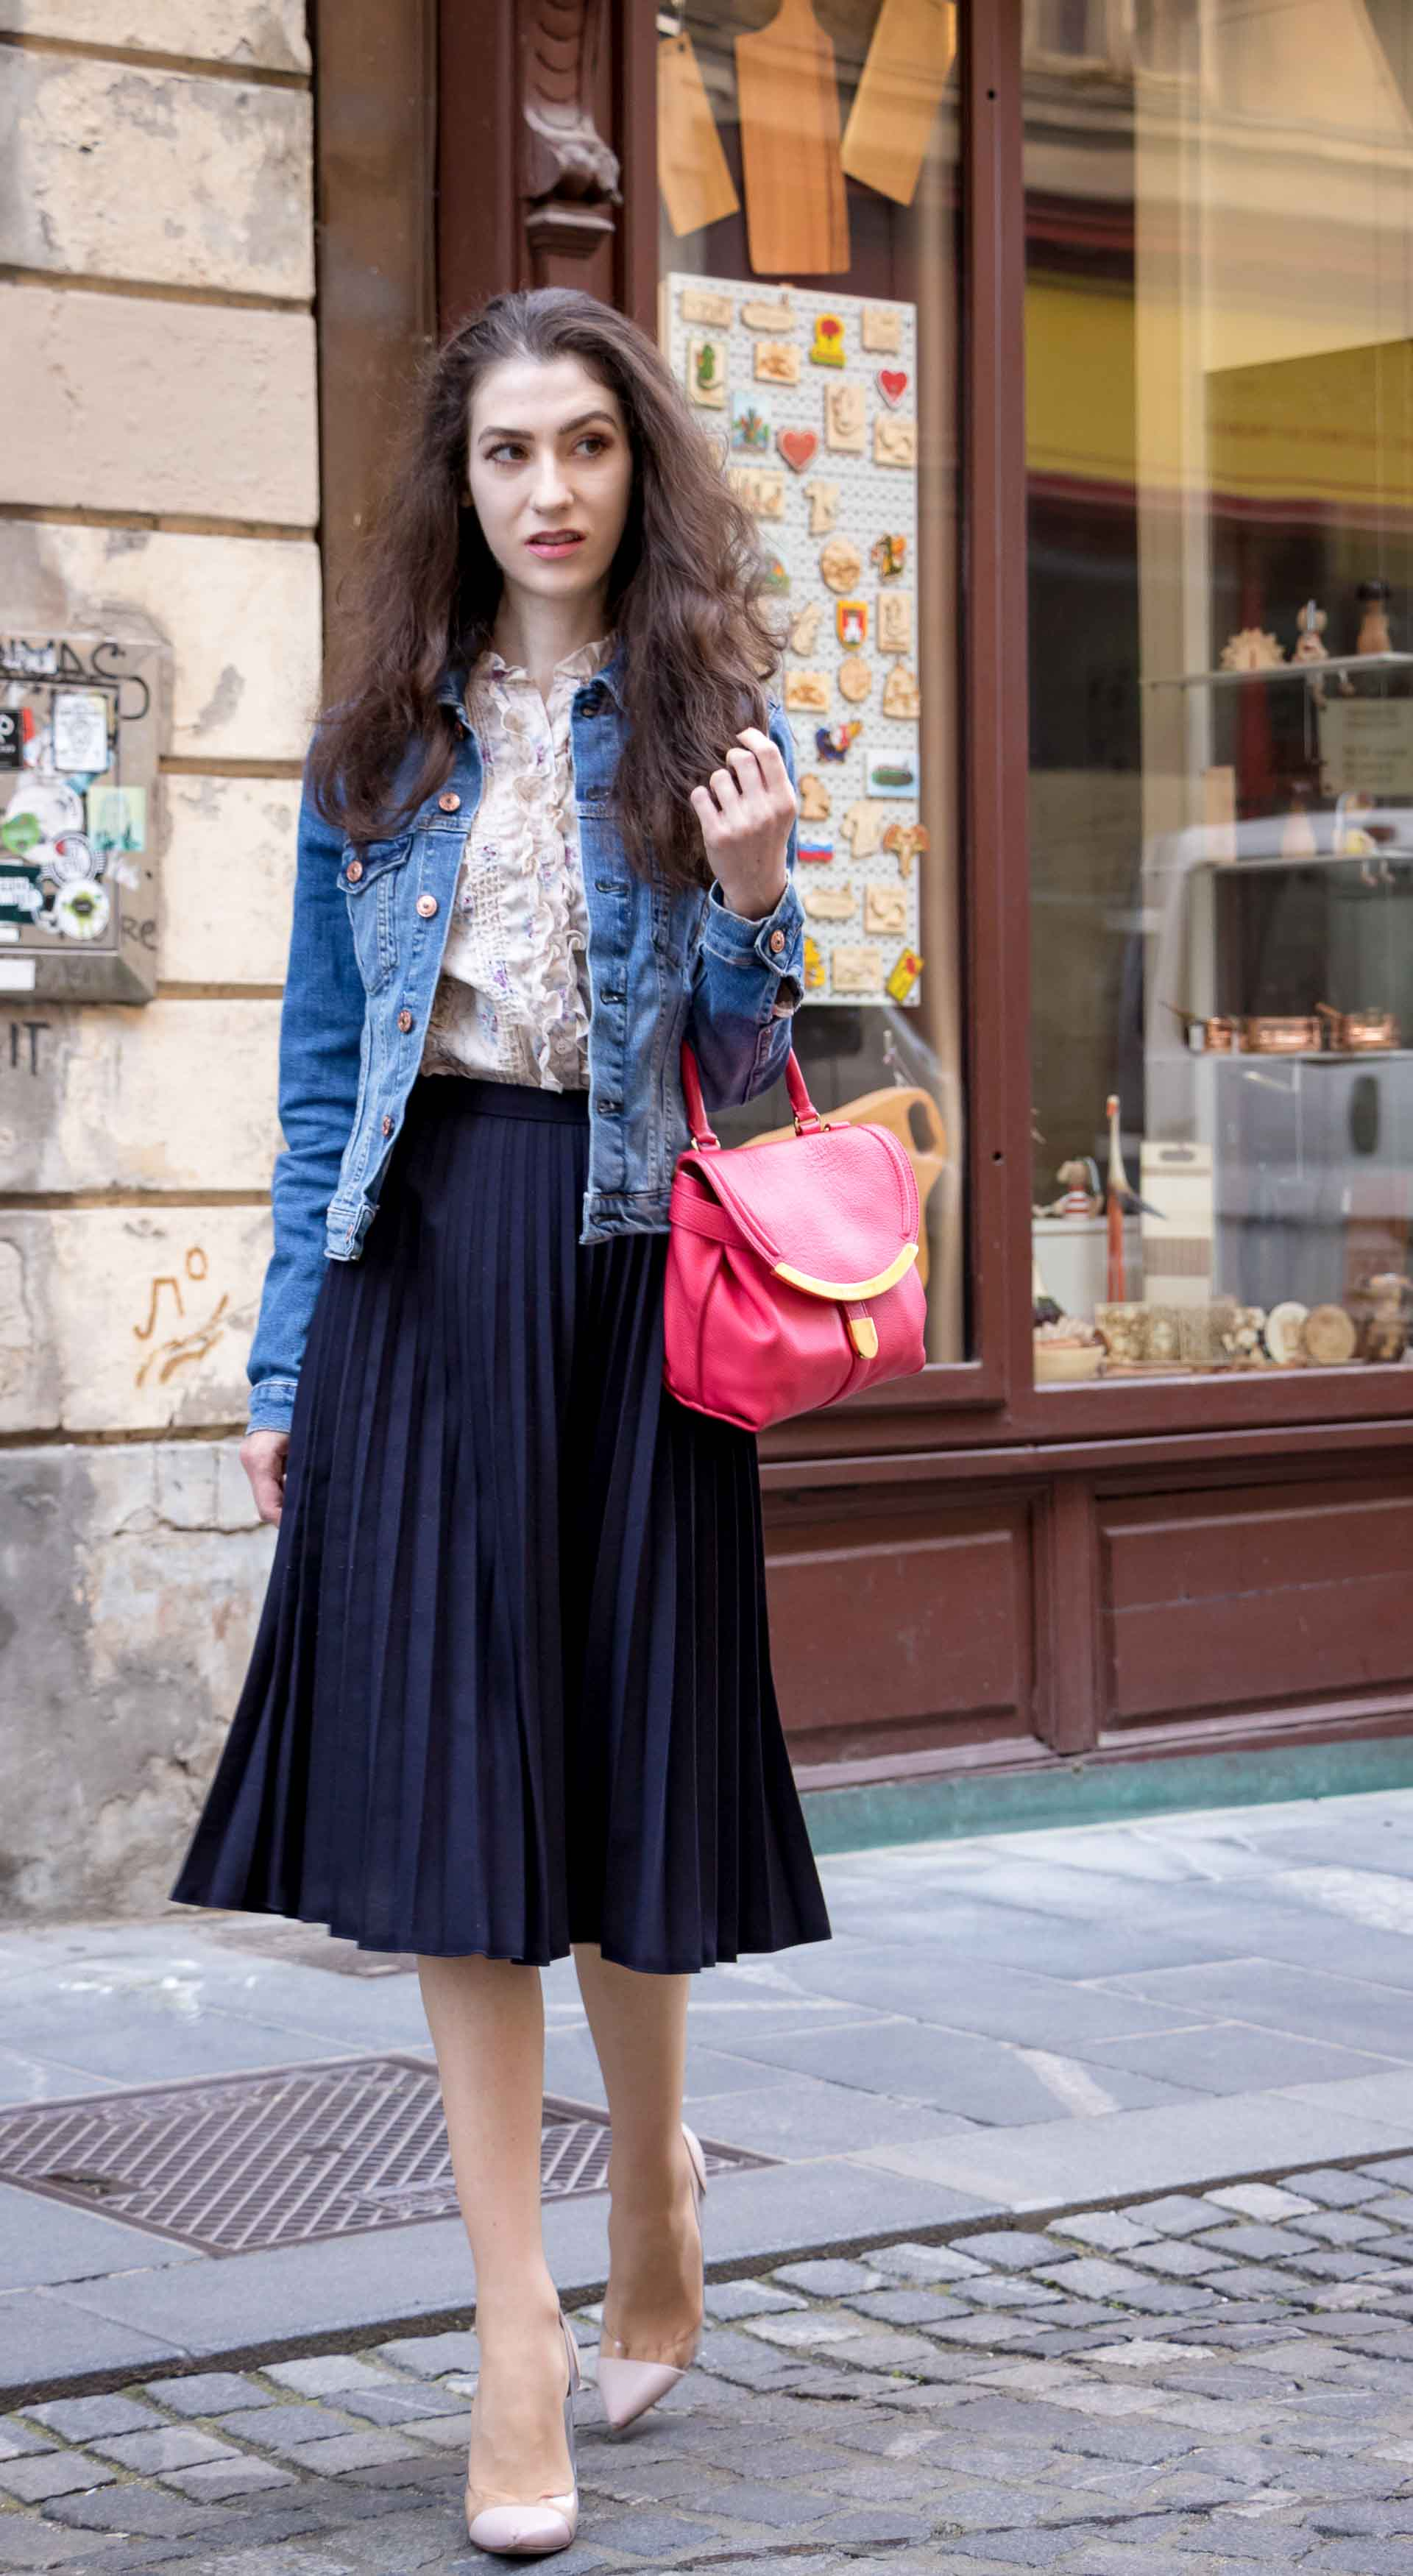 Veronika Lipar Fashion Blogger of Brunette from Wall Street wearing H&M denim jacket, floral blouse, midi pleated skirt, Gianvito Rossi plexi pumps, pink top handle bag for brunch